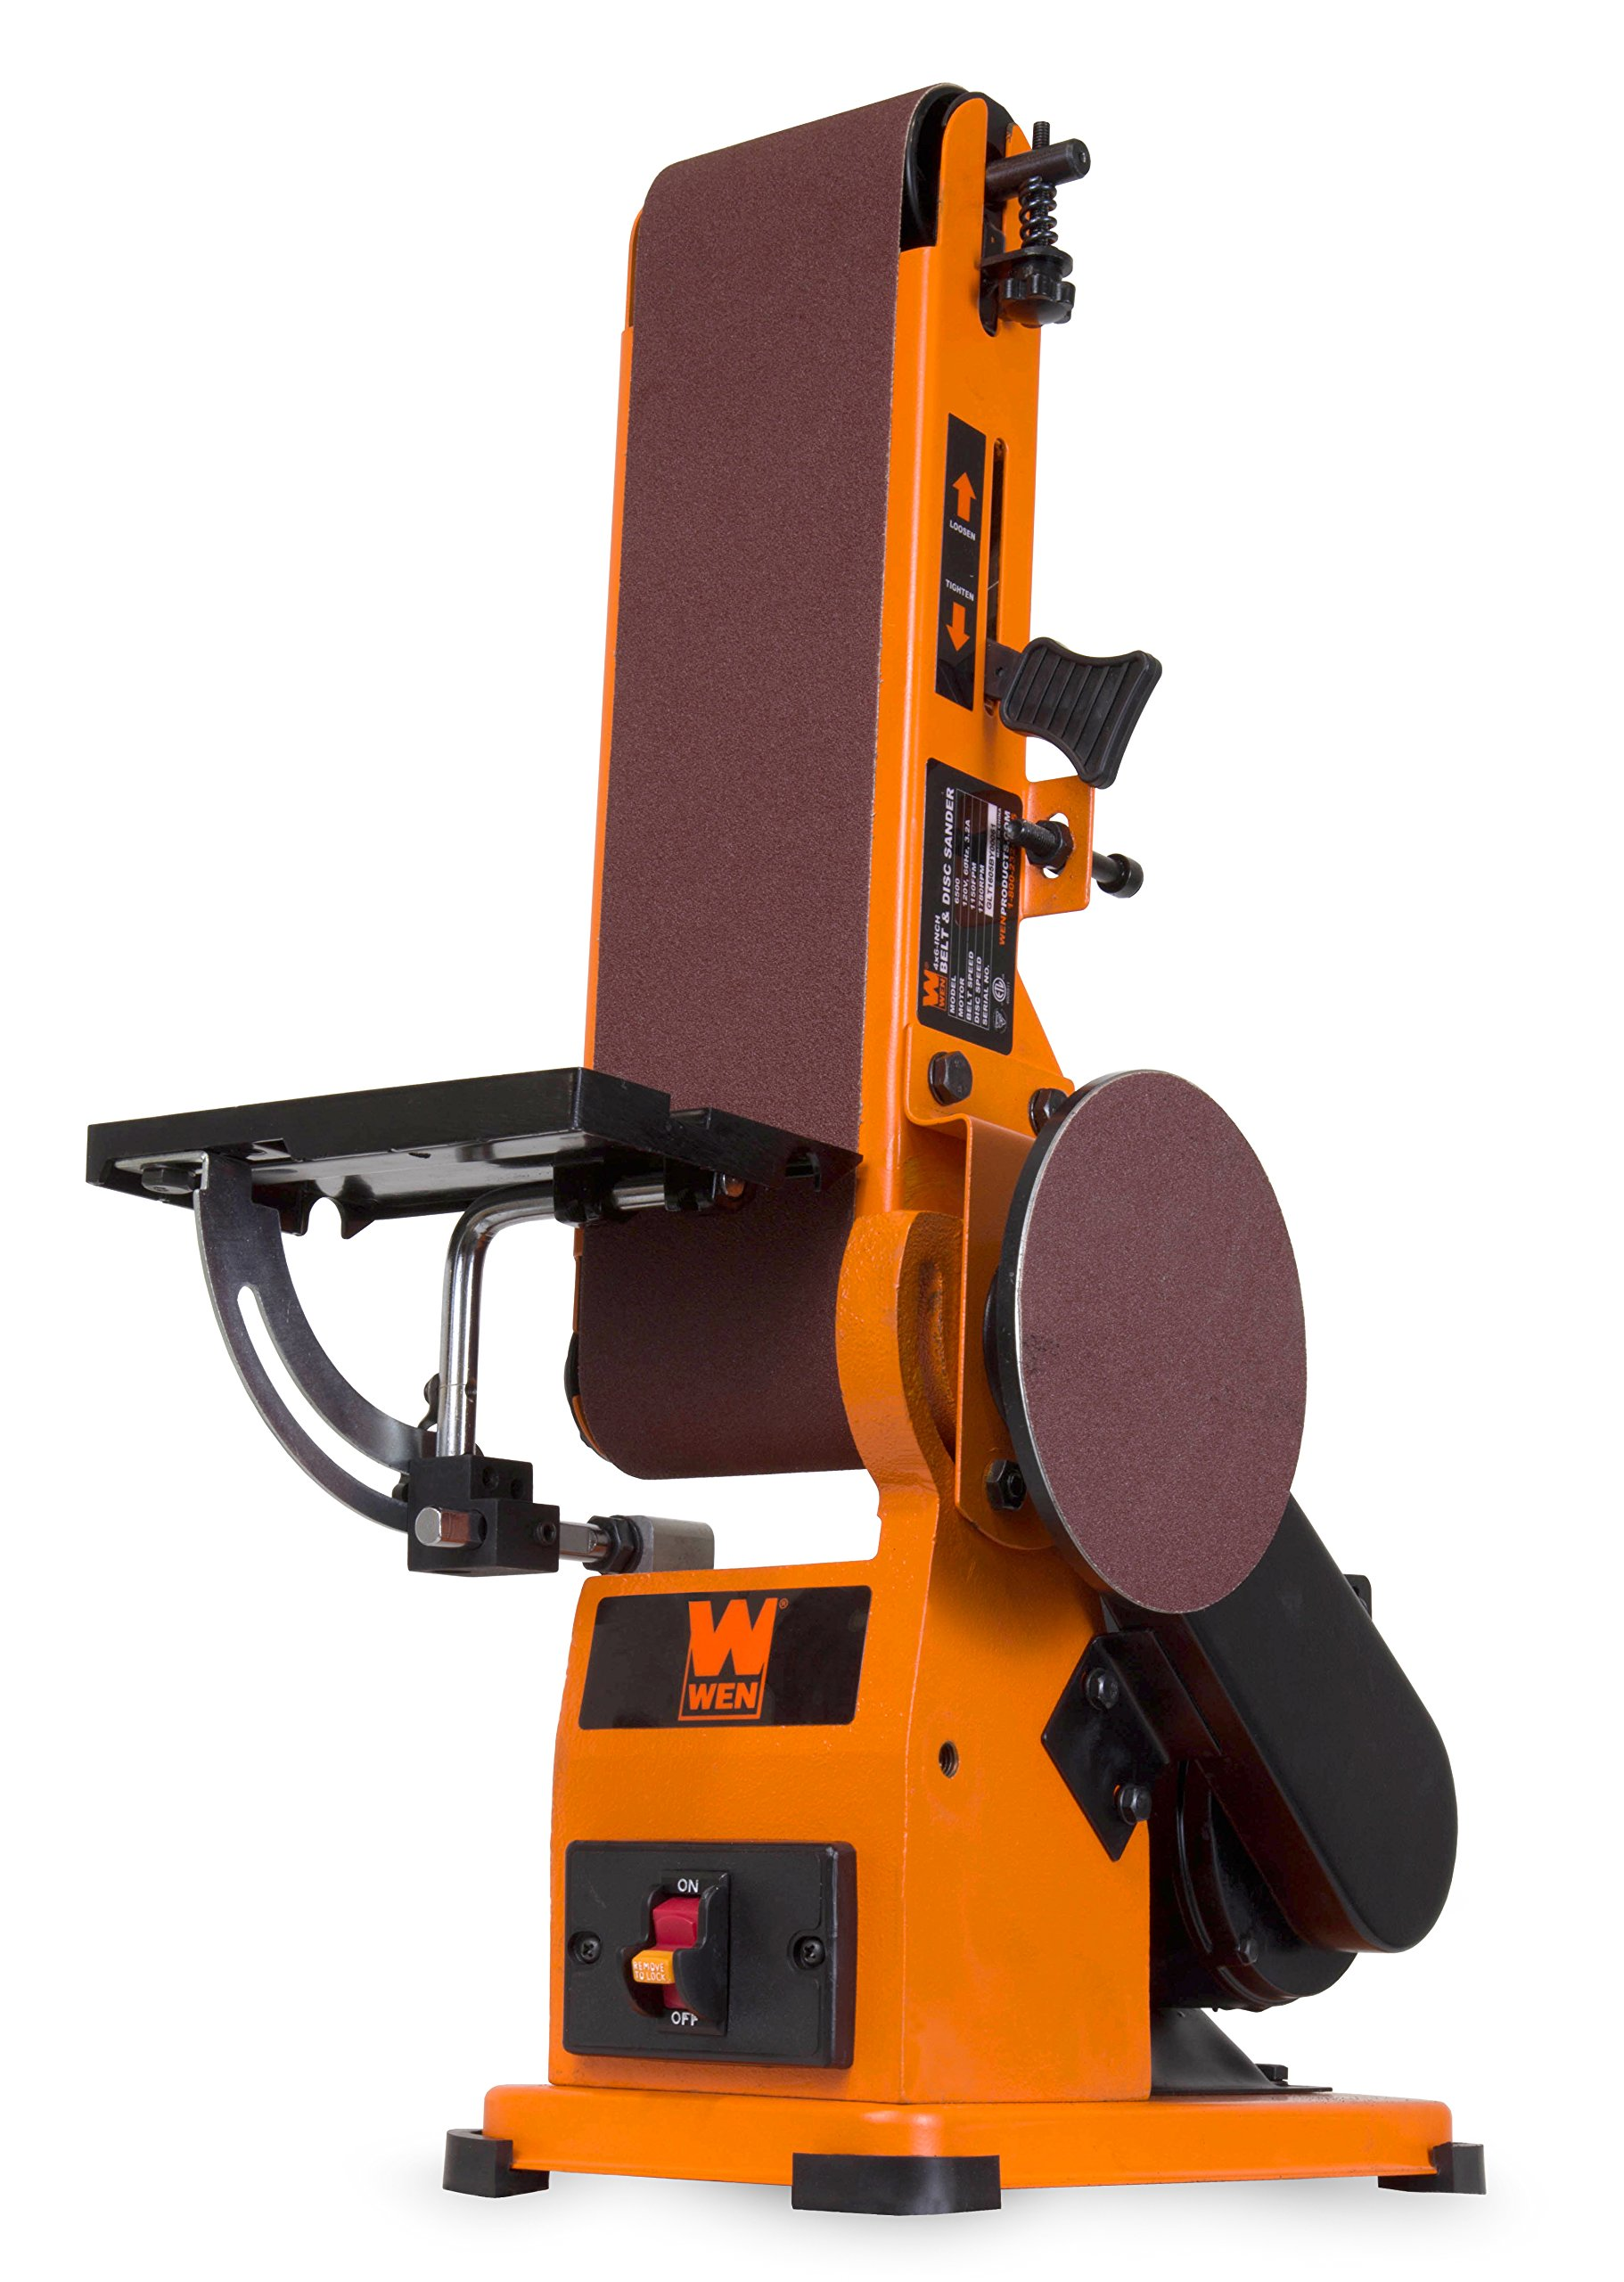 WEN 6500 4 x 36-Inch Belt and 6-Inch Disc Sander with Steel Base by WEN (Image #5)